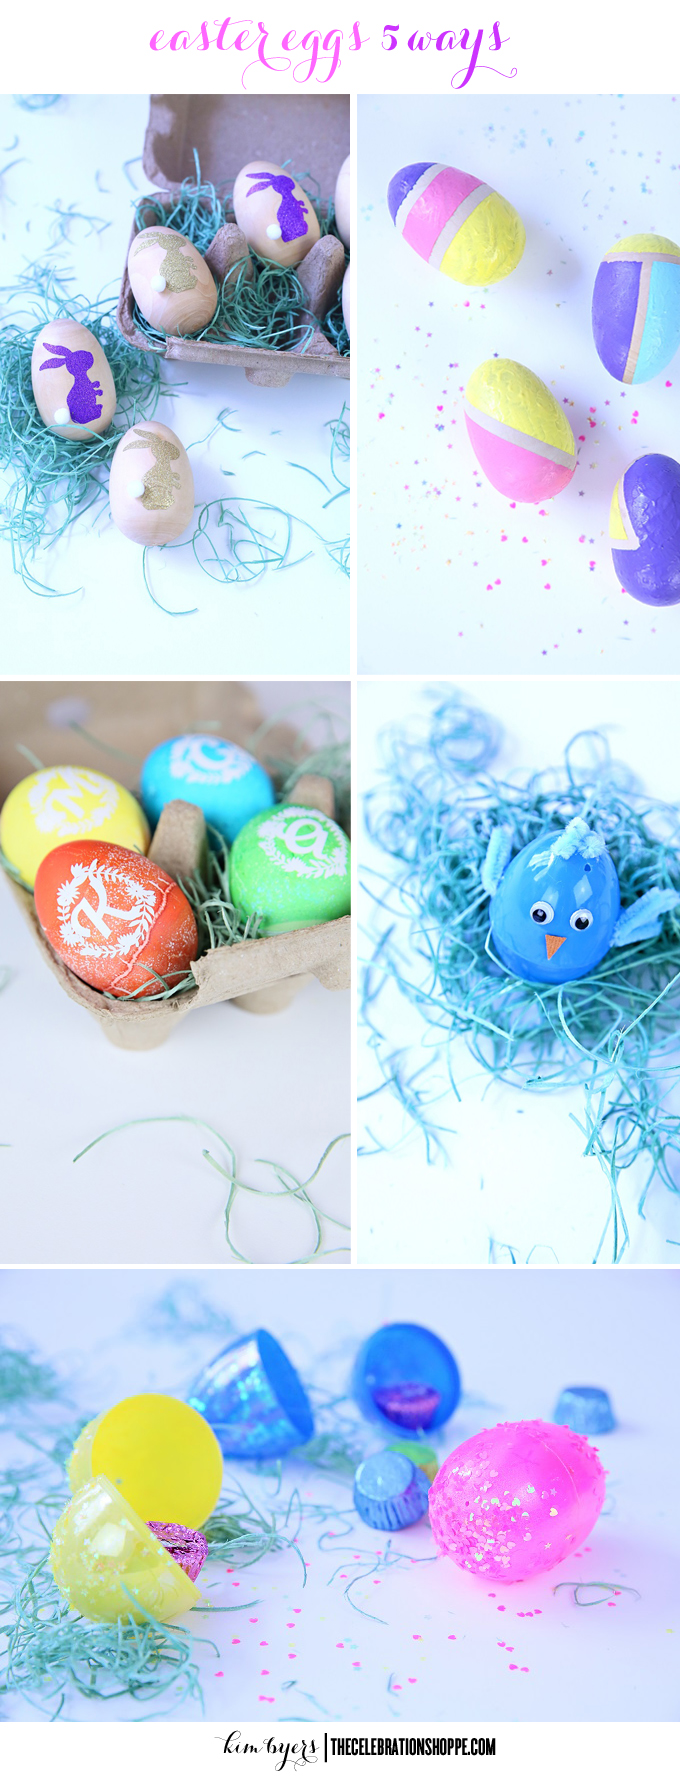 Easter Eggs 5 Ways | Kim Byers